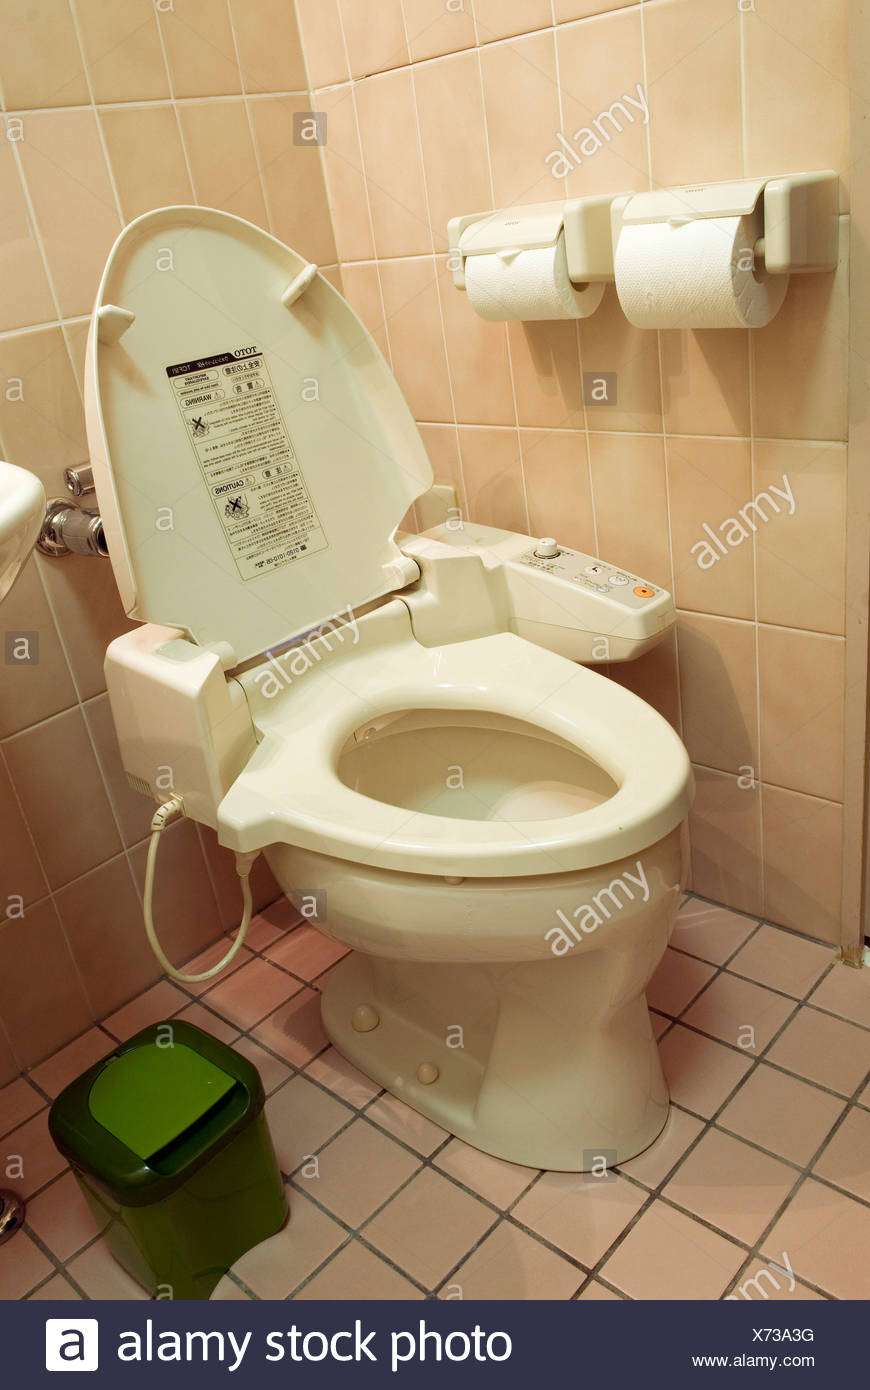 sophisticated japanese toilet,Japan Stock Photo: 279742276 - Alamy